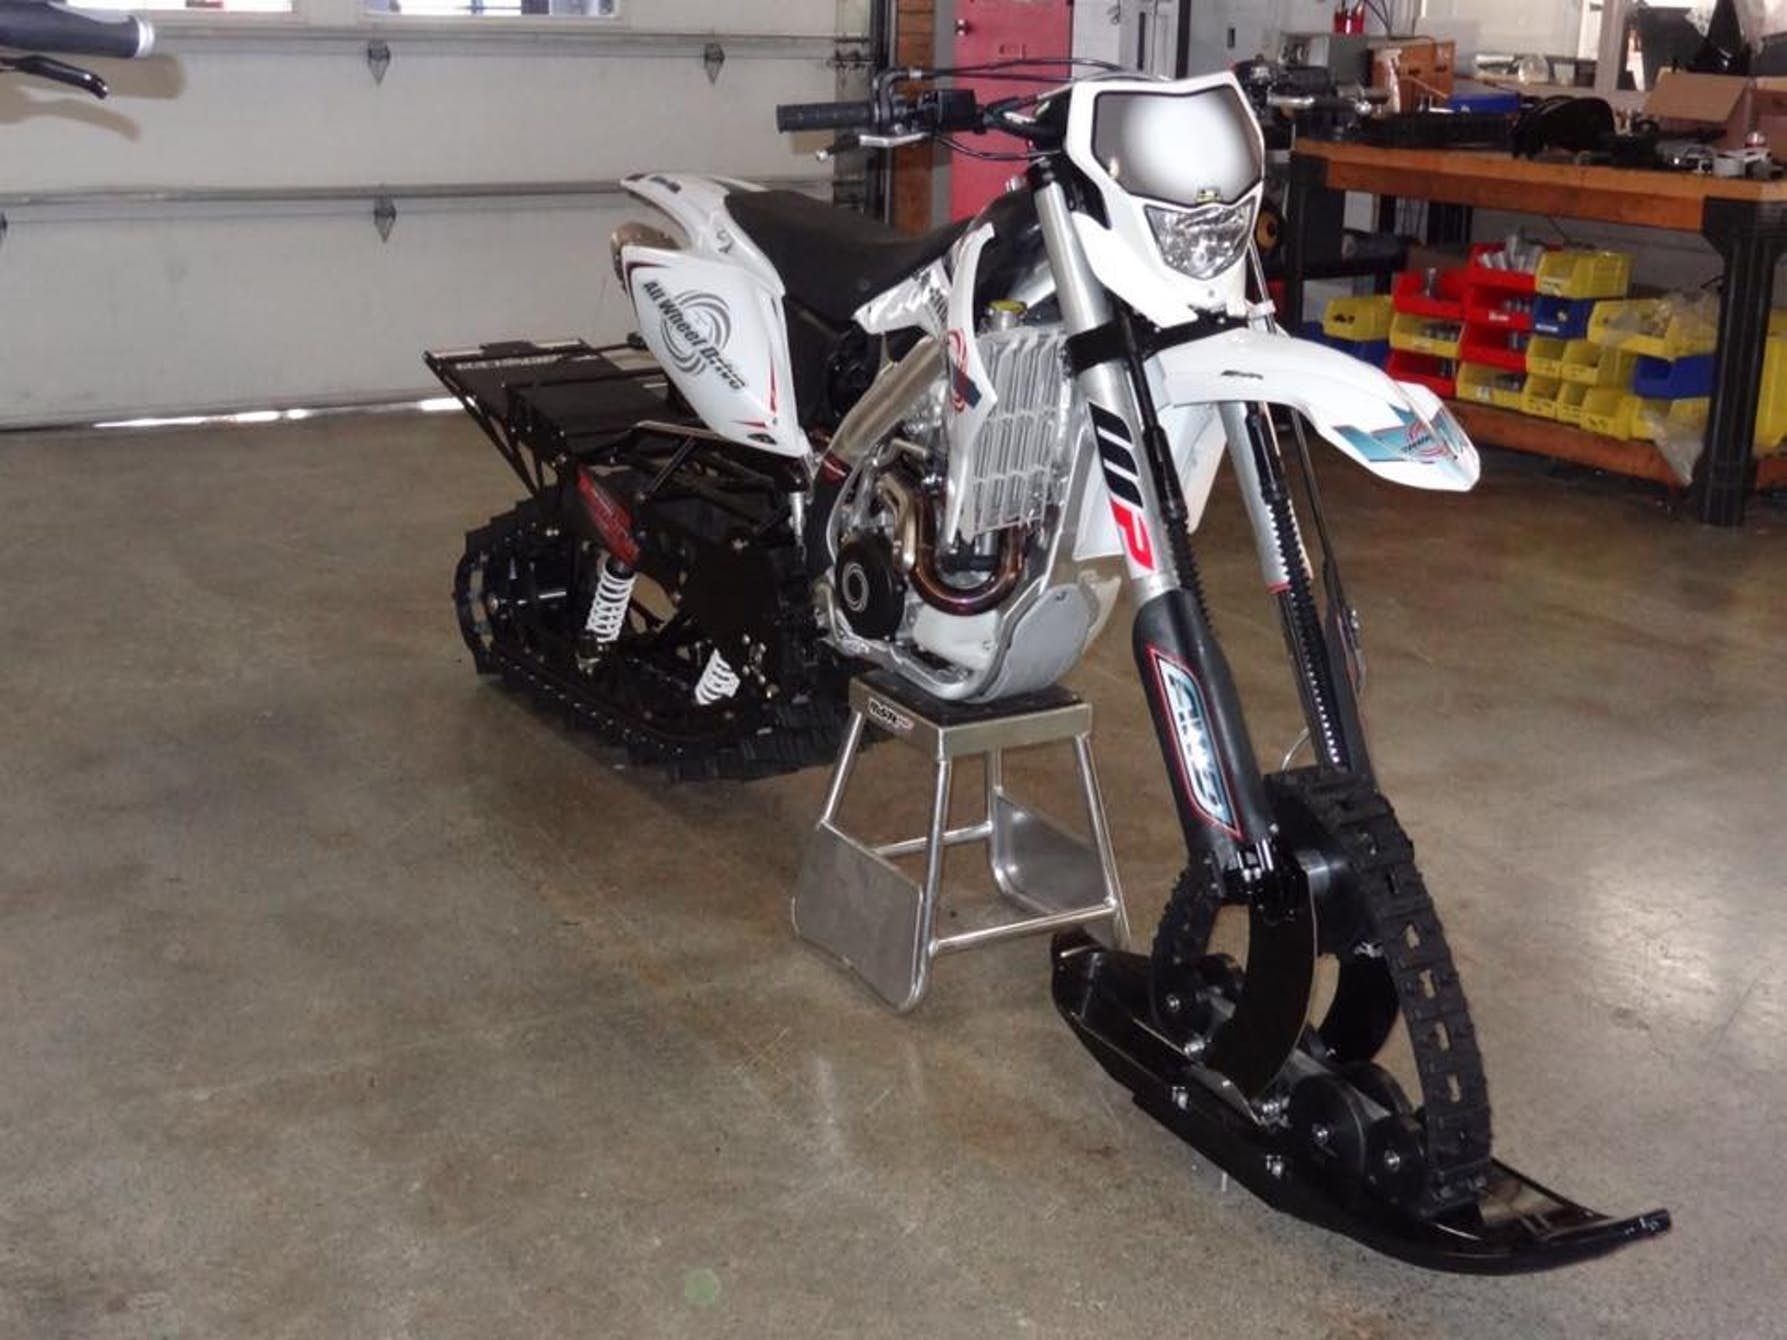 Christini S Ii Track Snow Bike System Must Be Added To One Of The Company S Existing All Wheel Drive Motorbikes Bike Motorcycle Dirt Bike Snowbike